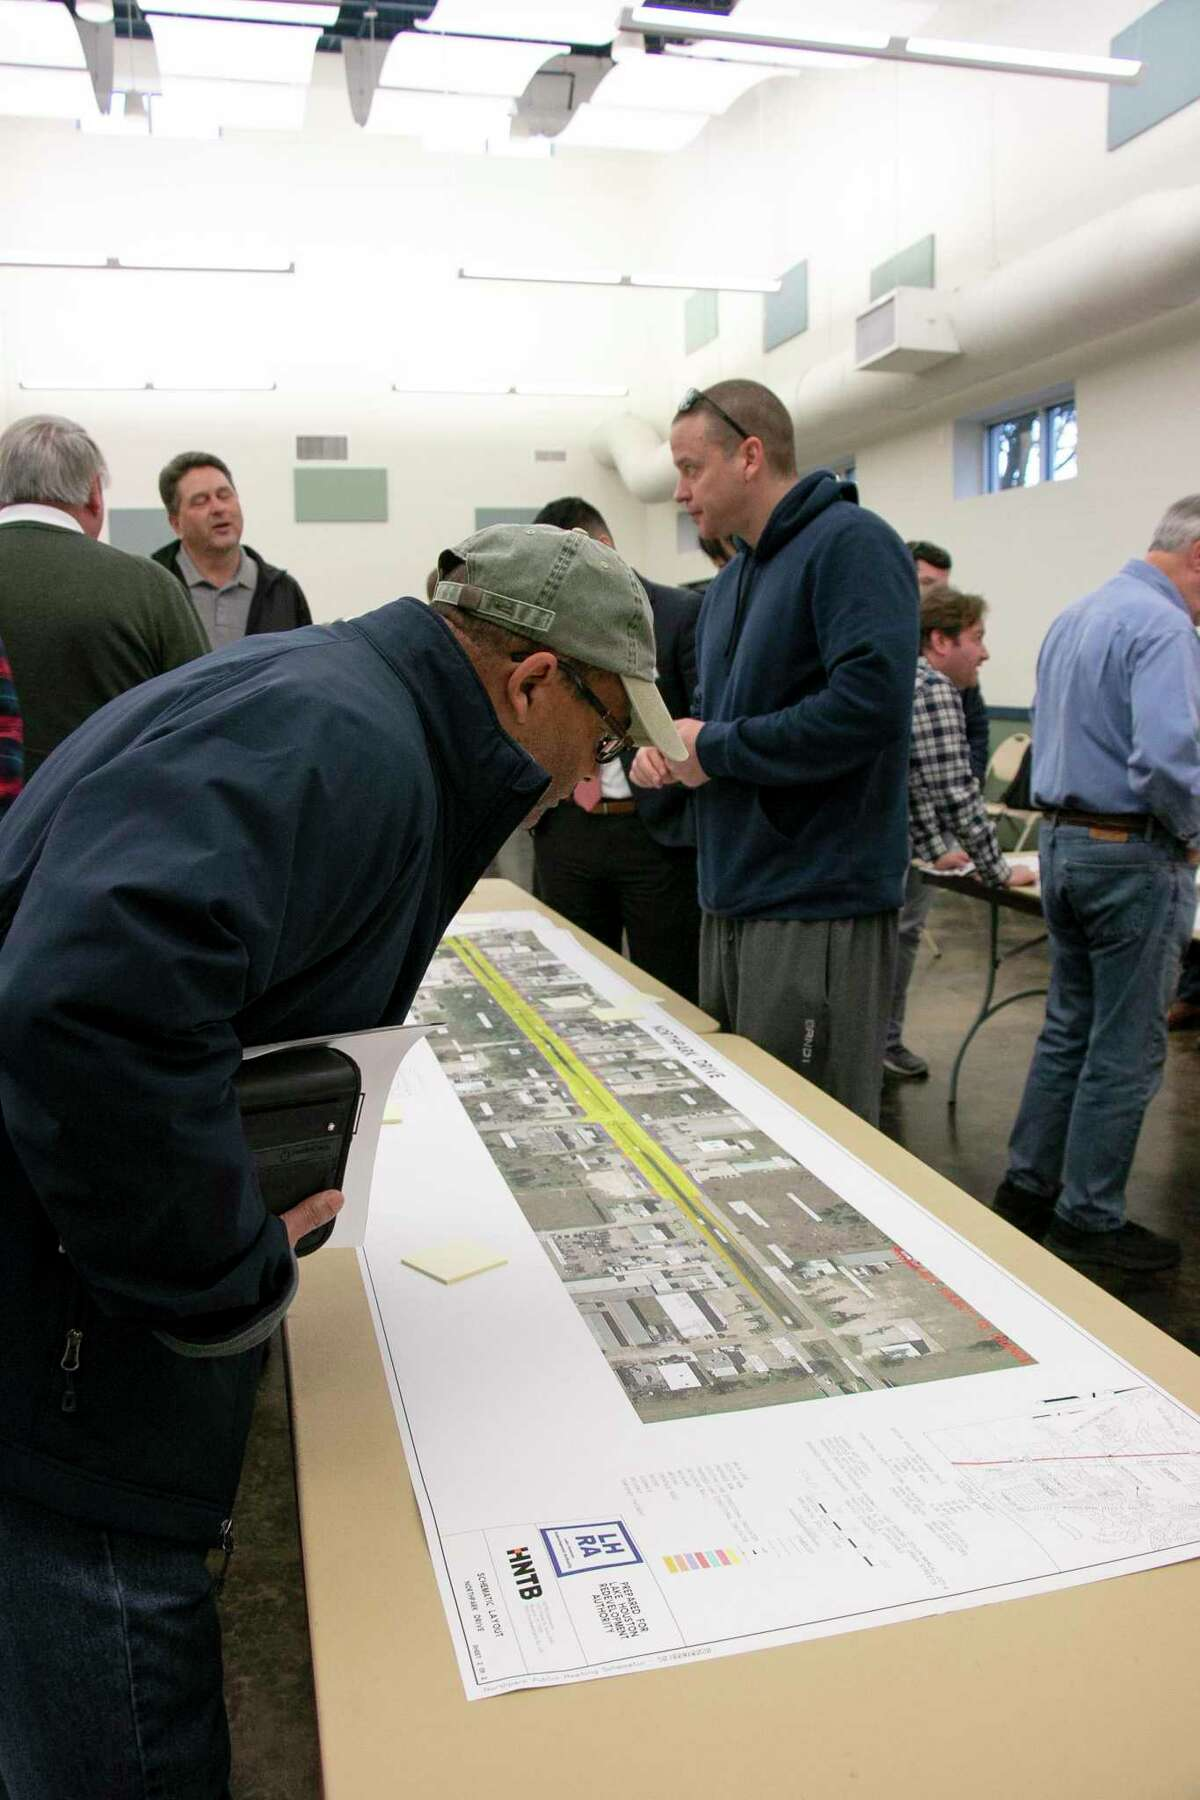 The $88.2 million Northpark Drive Overpass Project is designed to help improve mobility throughout Kingwood. The TIRZ open house on Feb. 6, 2020 presented updated information about the project to the community. Local representatives from the area or members from their offices also attended.